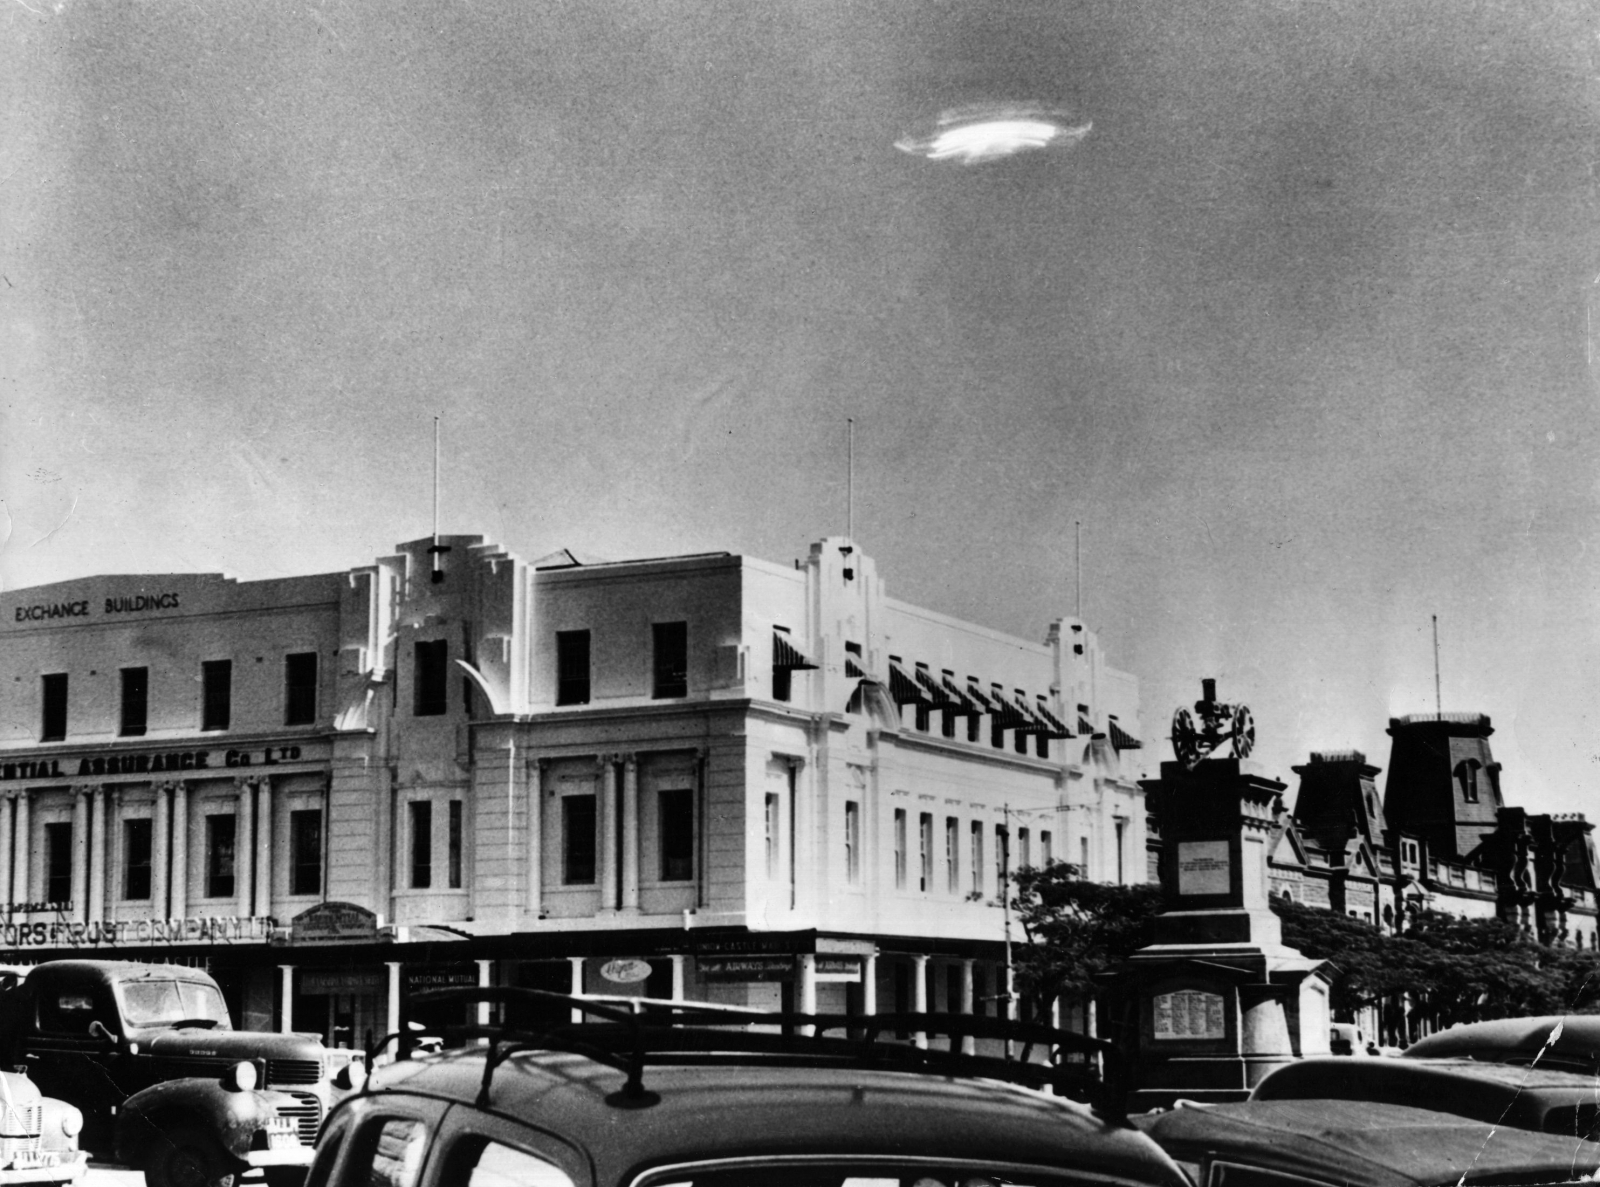 Pentagon study of UFOs revealed — NY Times